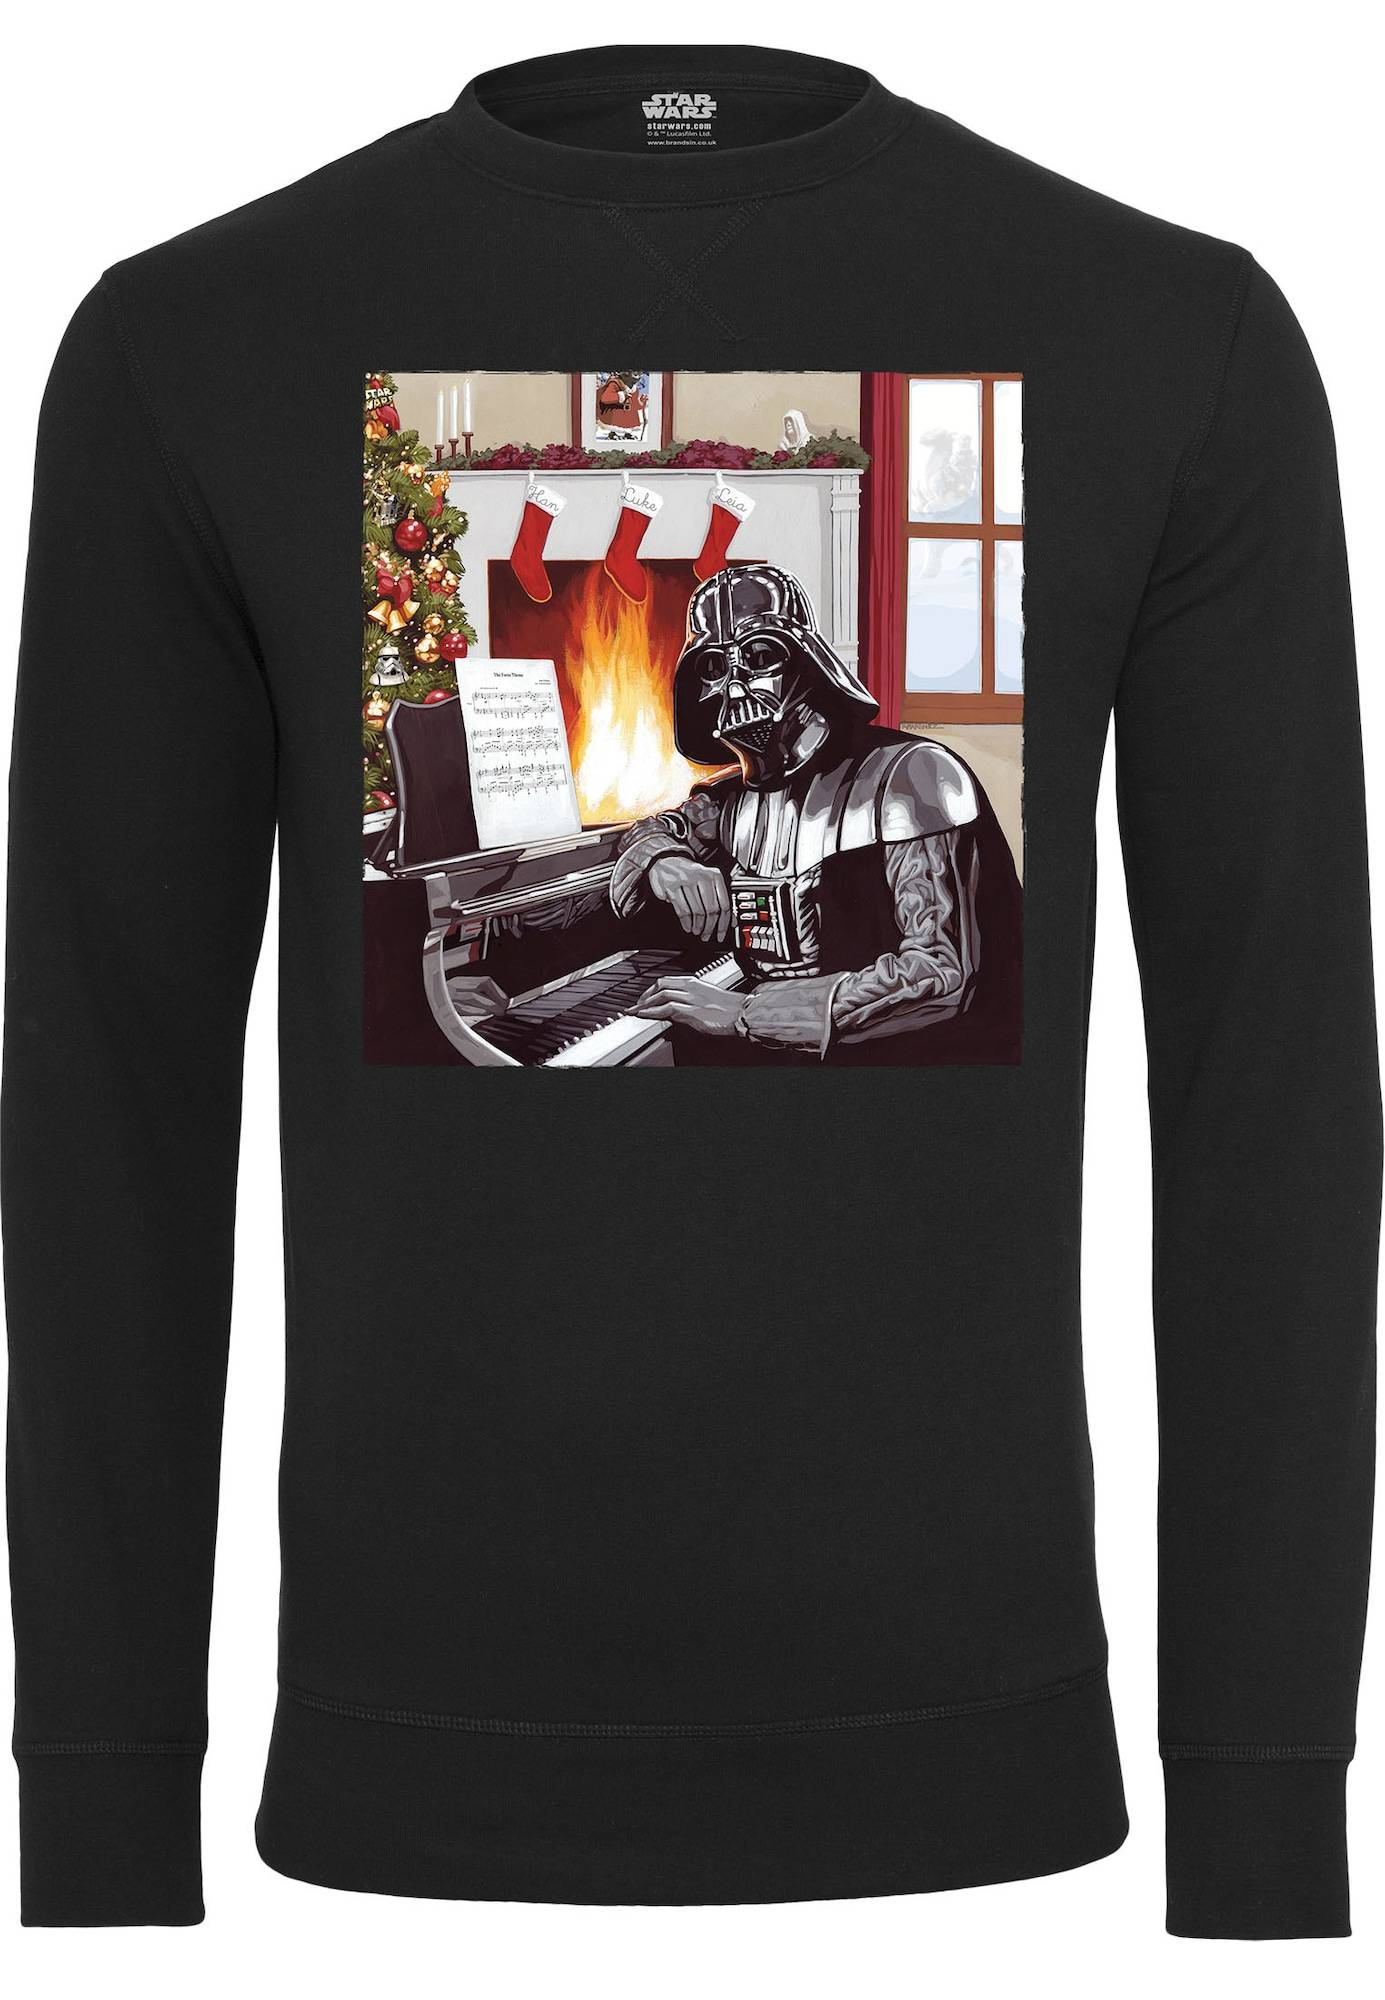 Tee Sweat-shirt 'Darth Vader Piano'  - Noir - Taille: S - male